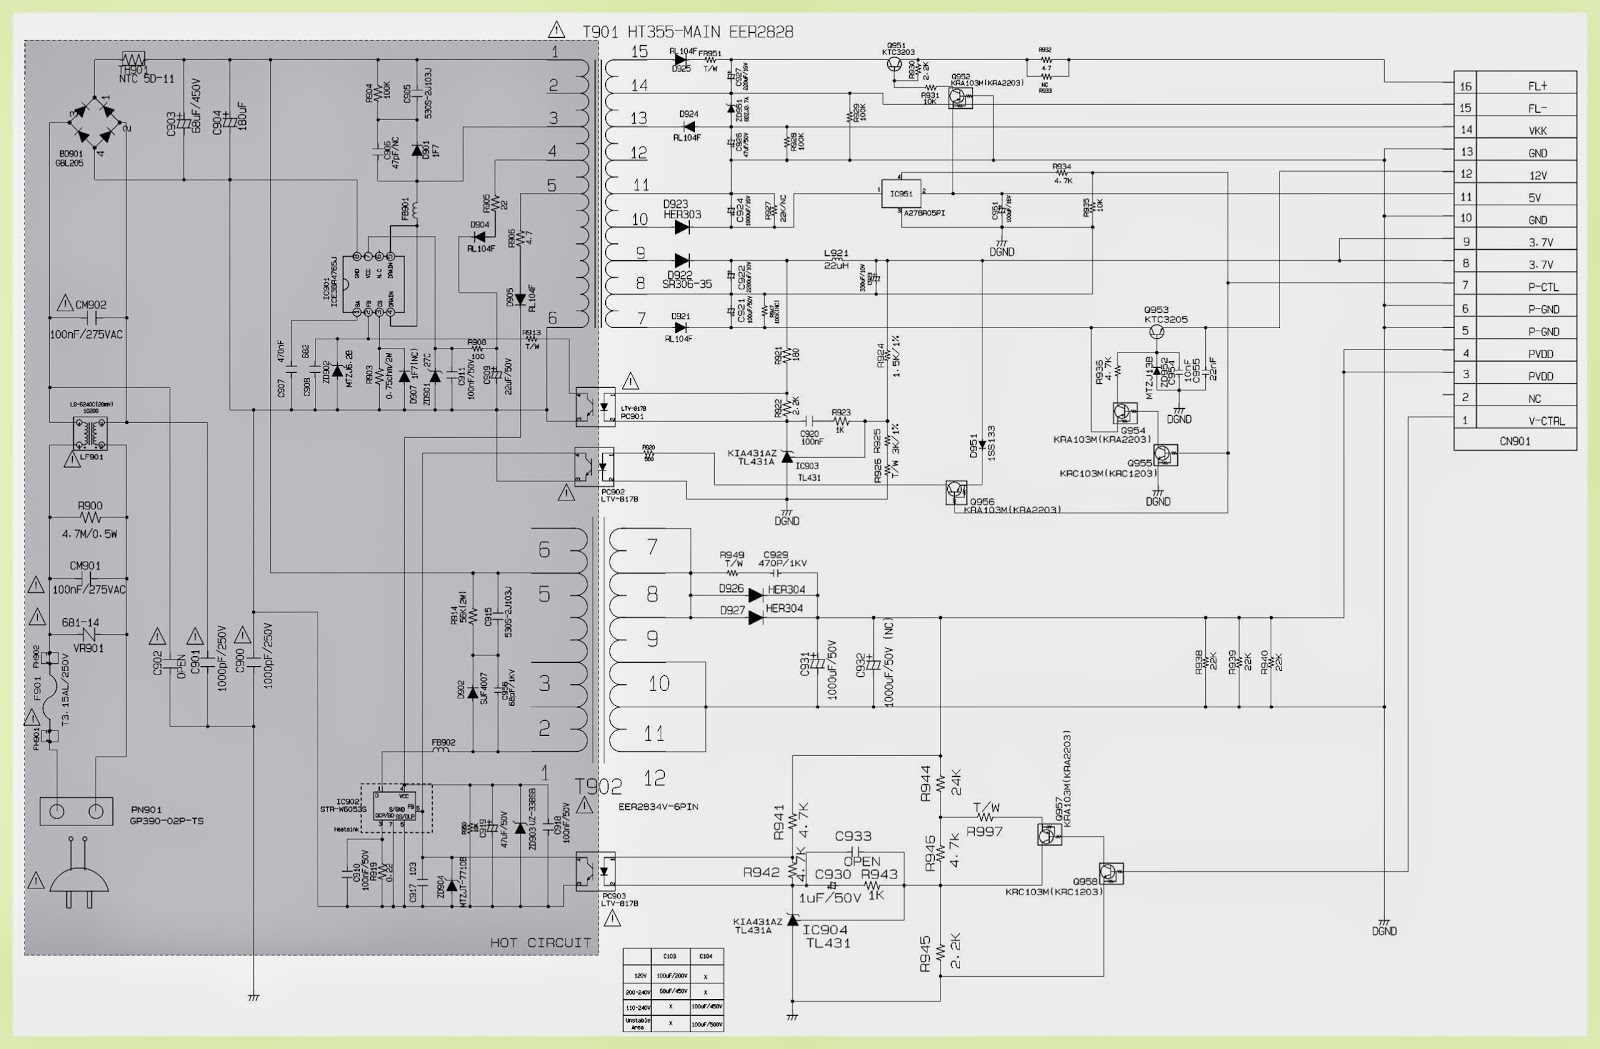 Lg Ht306sf Power Supply And Amp Circuit Diagram Firmware Diagrams Pwb Top Bottom View